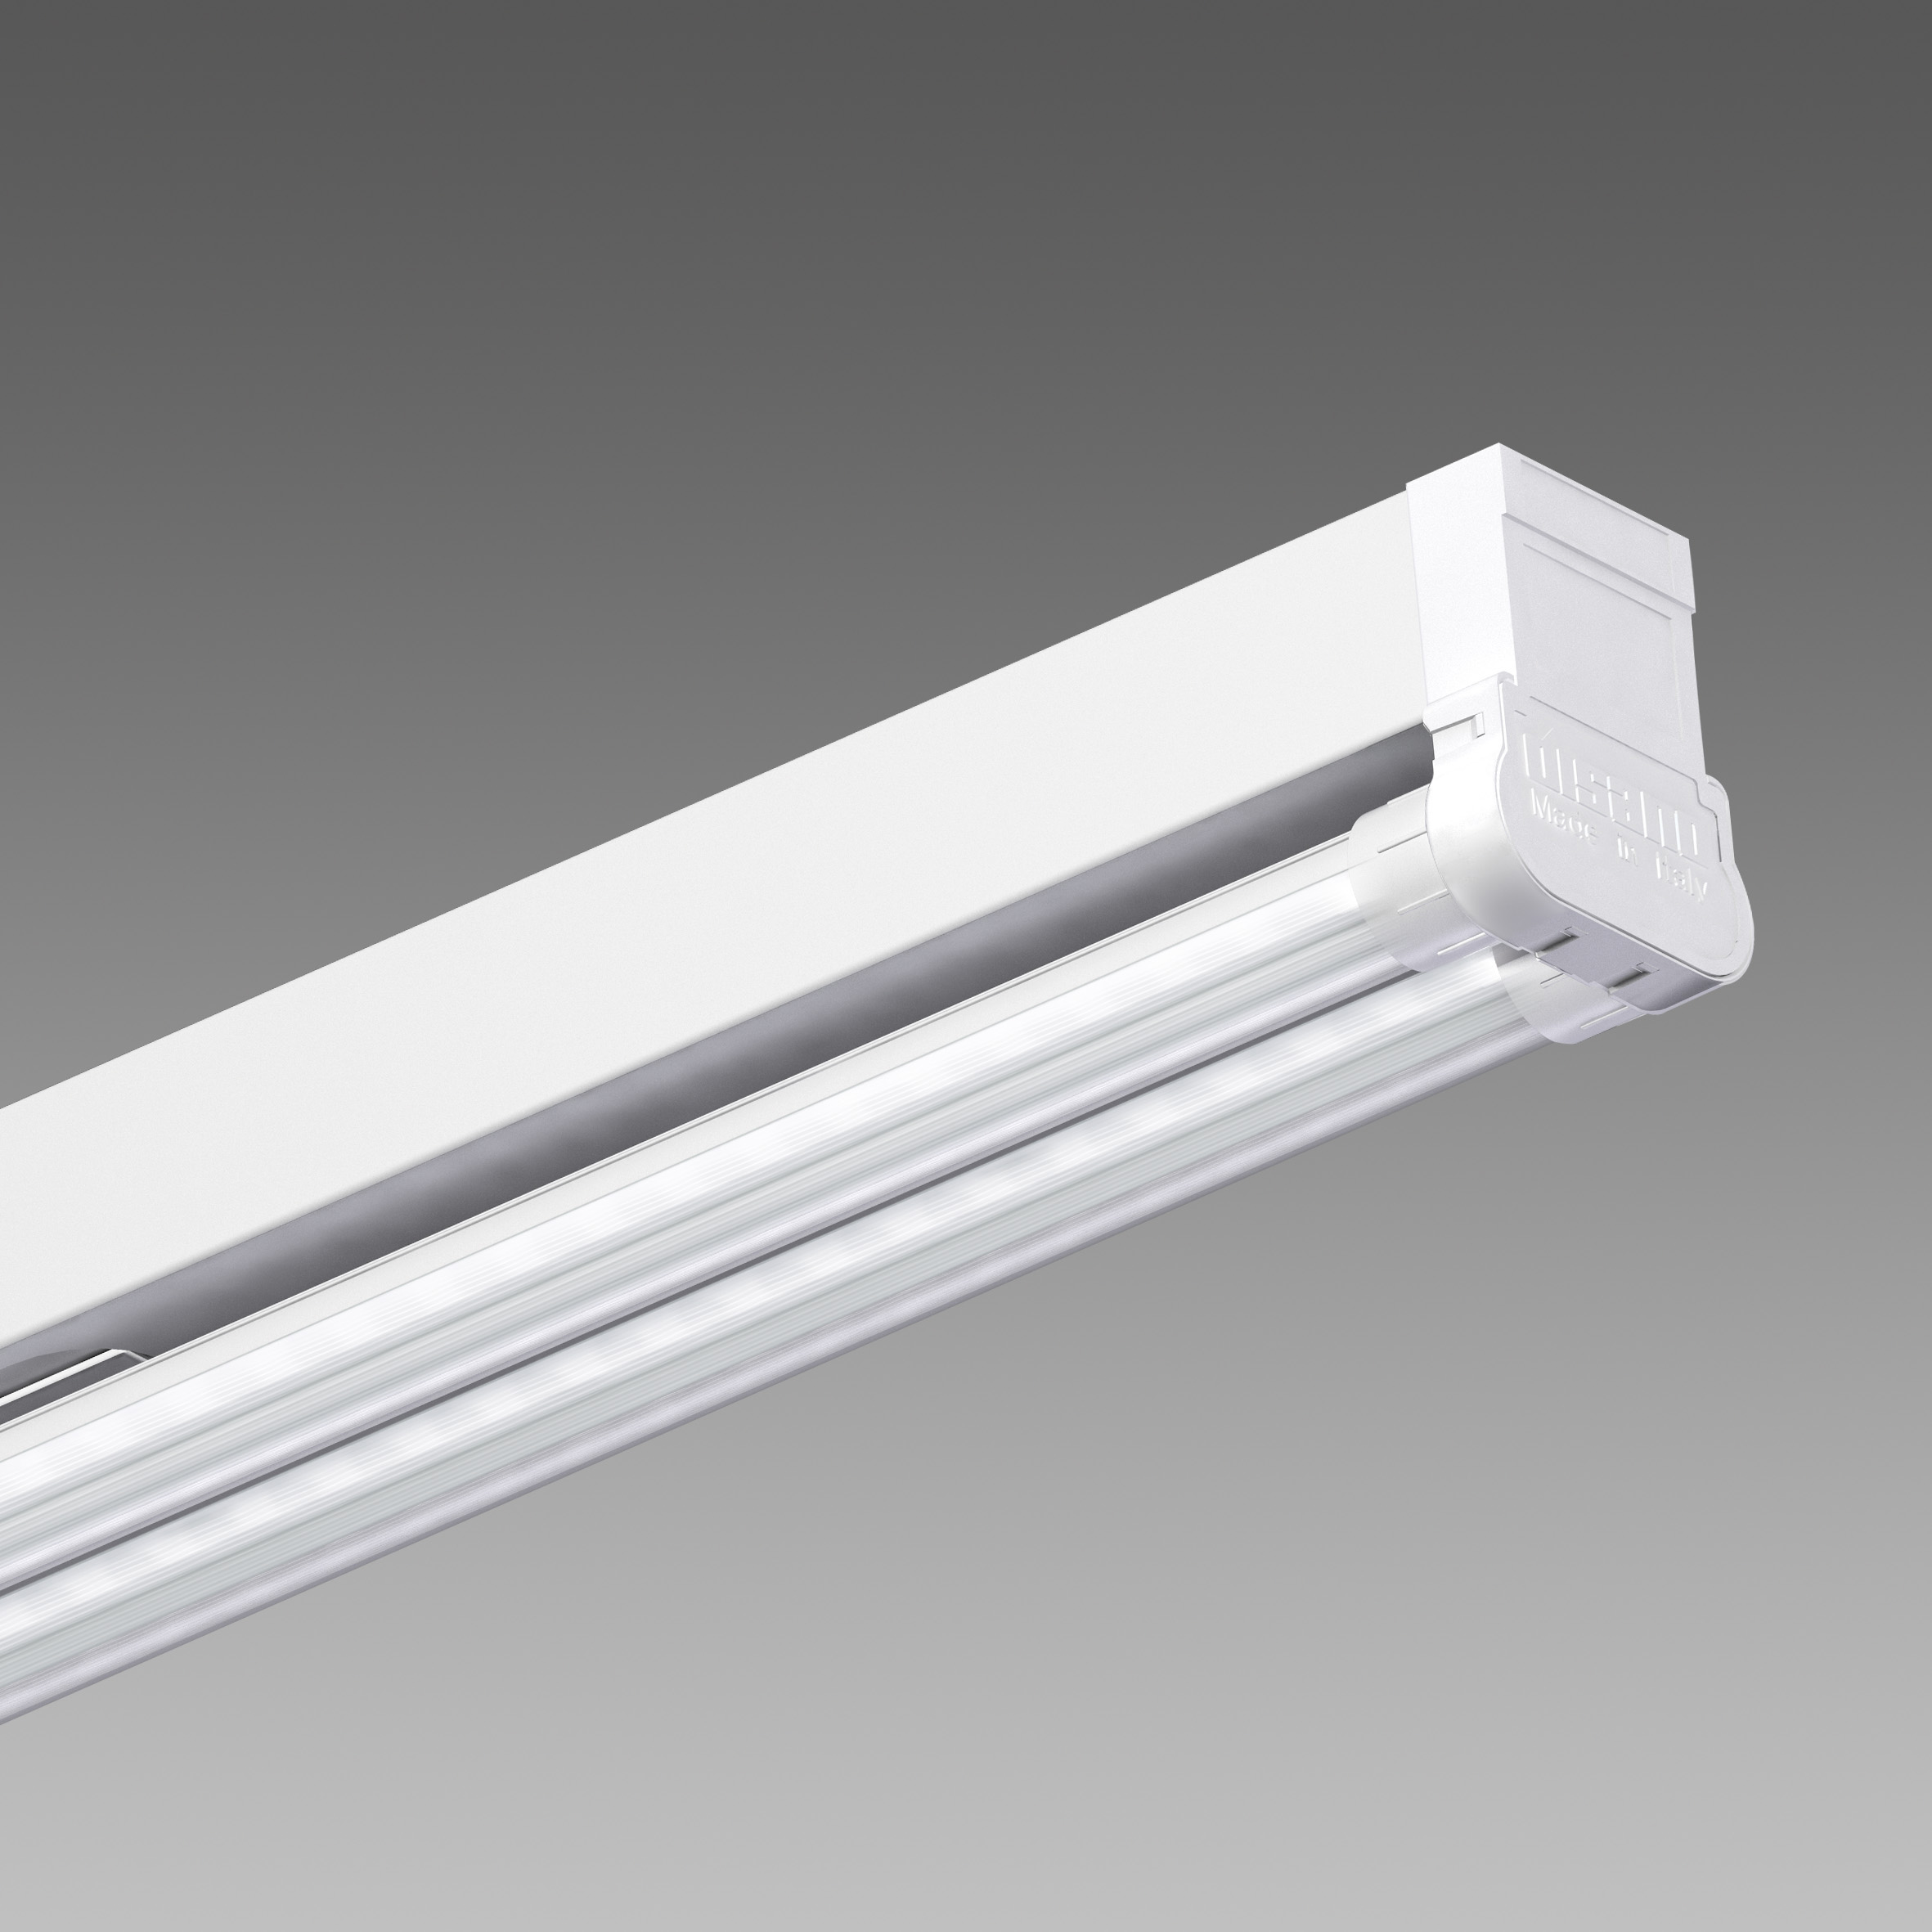 6502 Rapid system - 2-lamps version LED - Disano